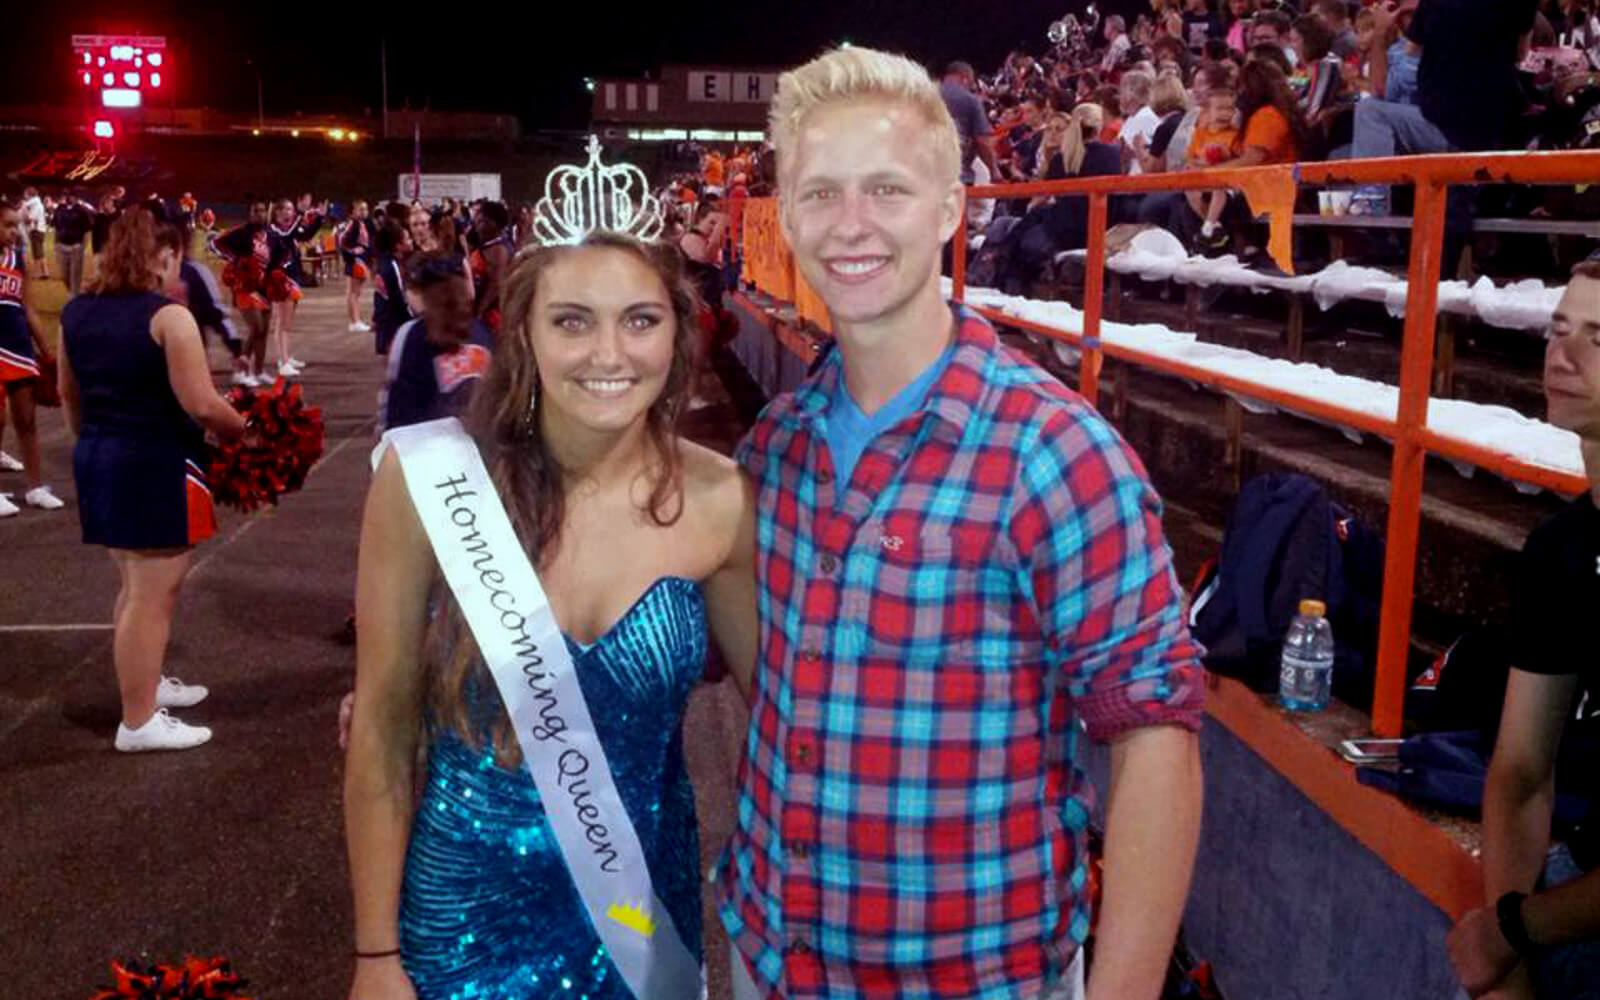 Malte mit der Homecoming Queen